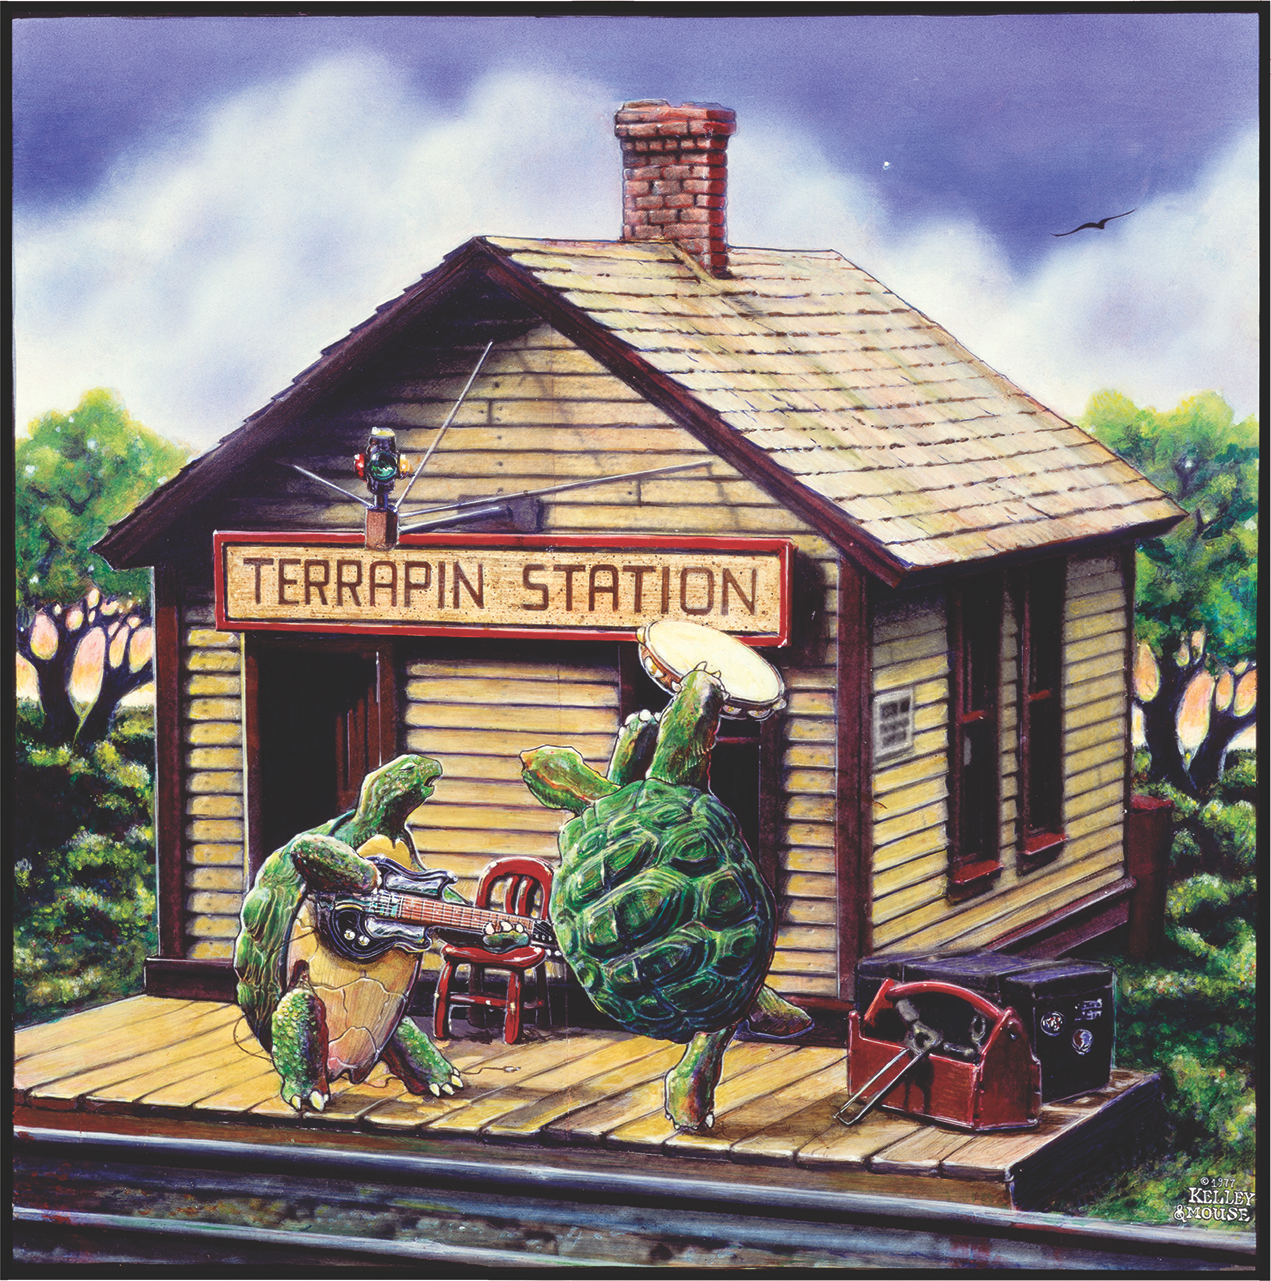 139 terrapin station painting